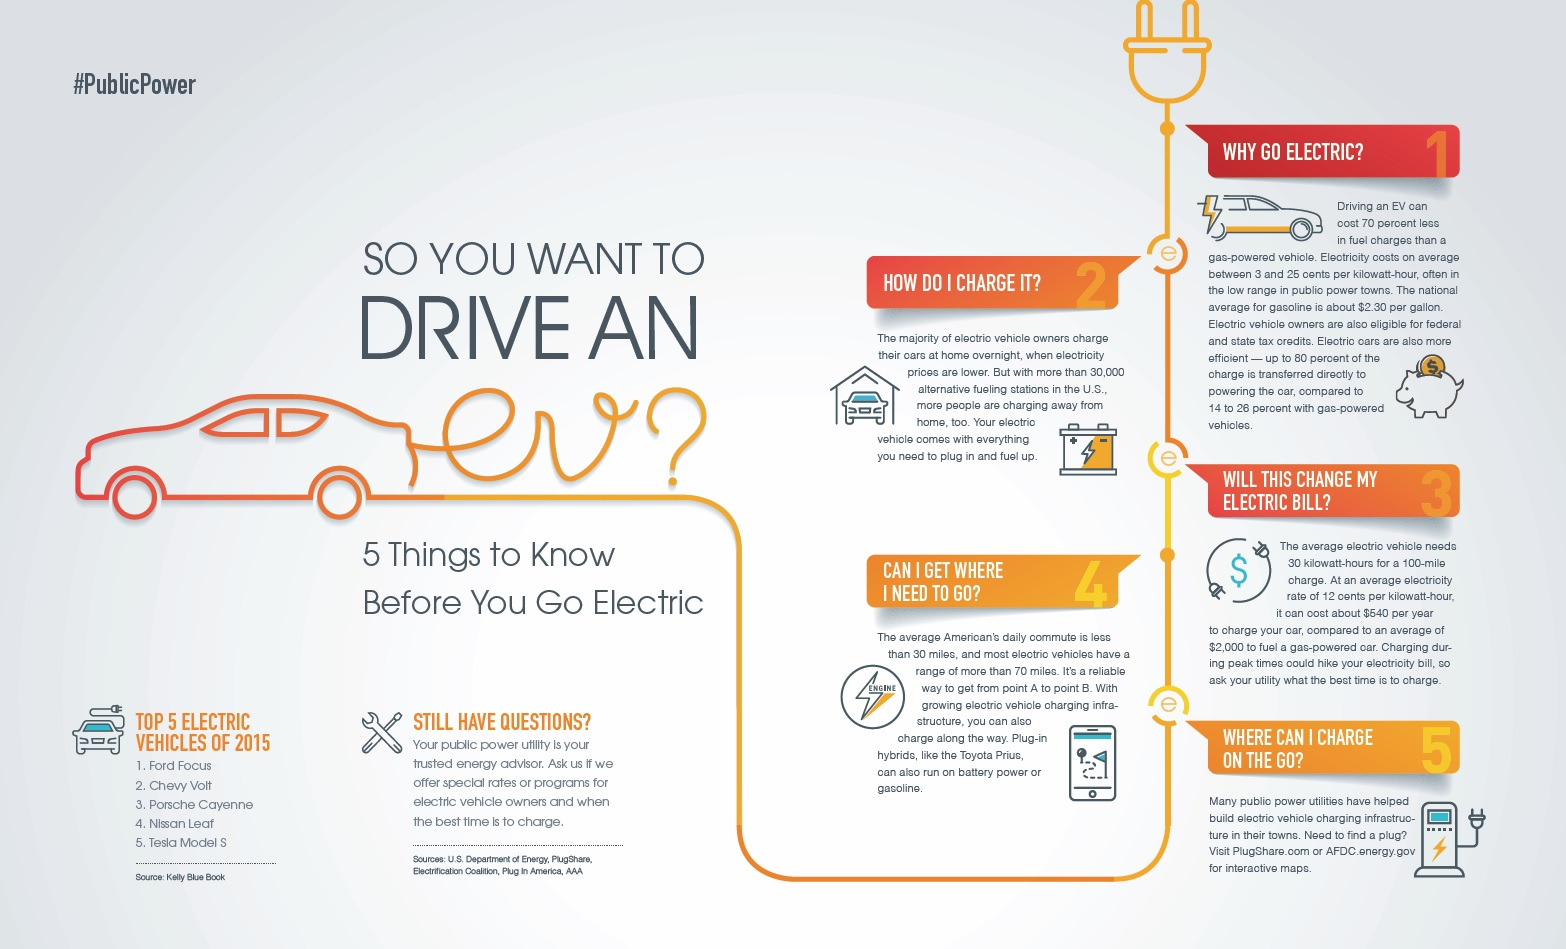 Infographic of 5 considerations before going electric